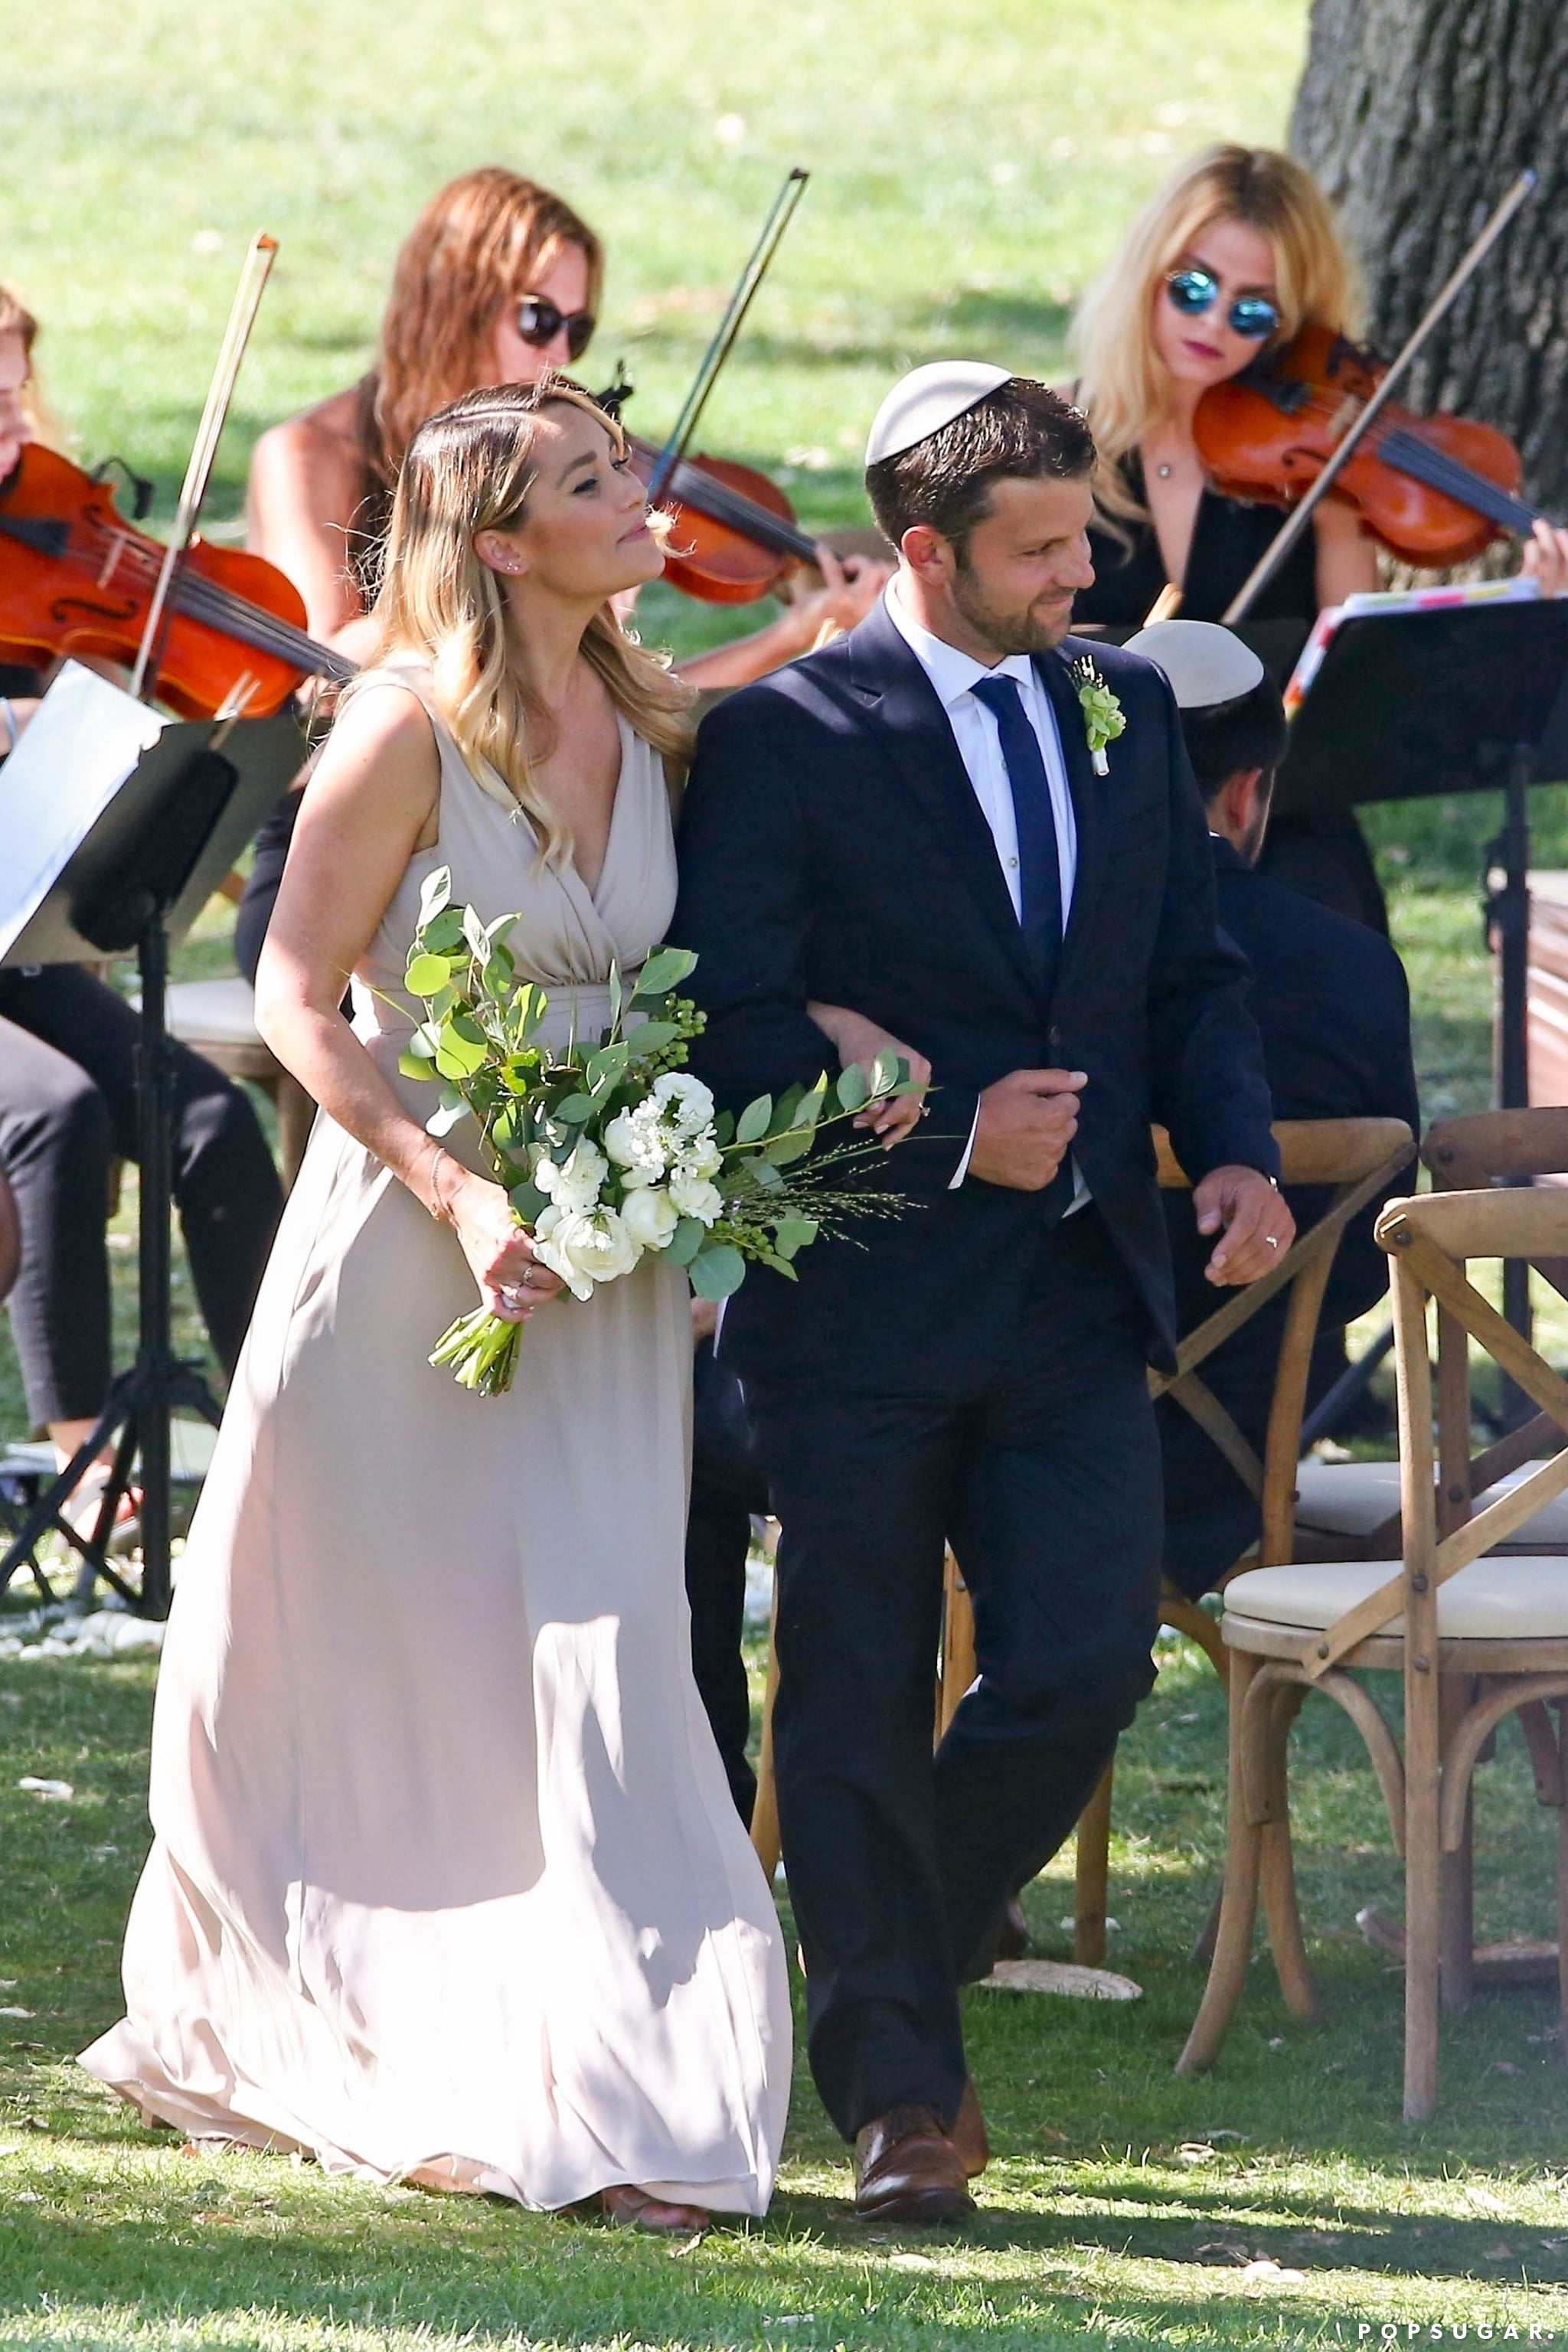 The Bridesmaids Gowns Were From Paper Crown Lauren Conrad